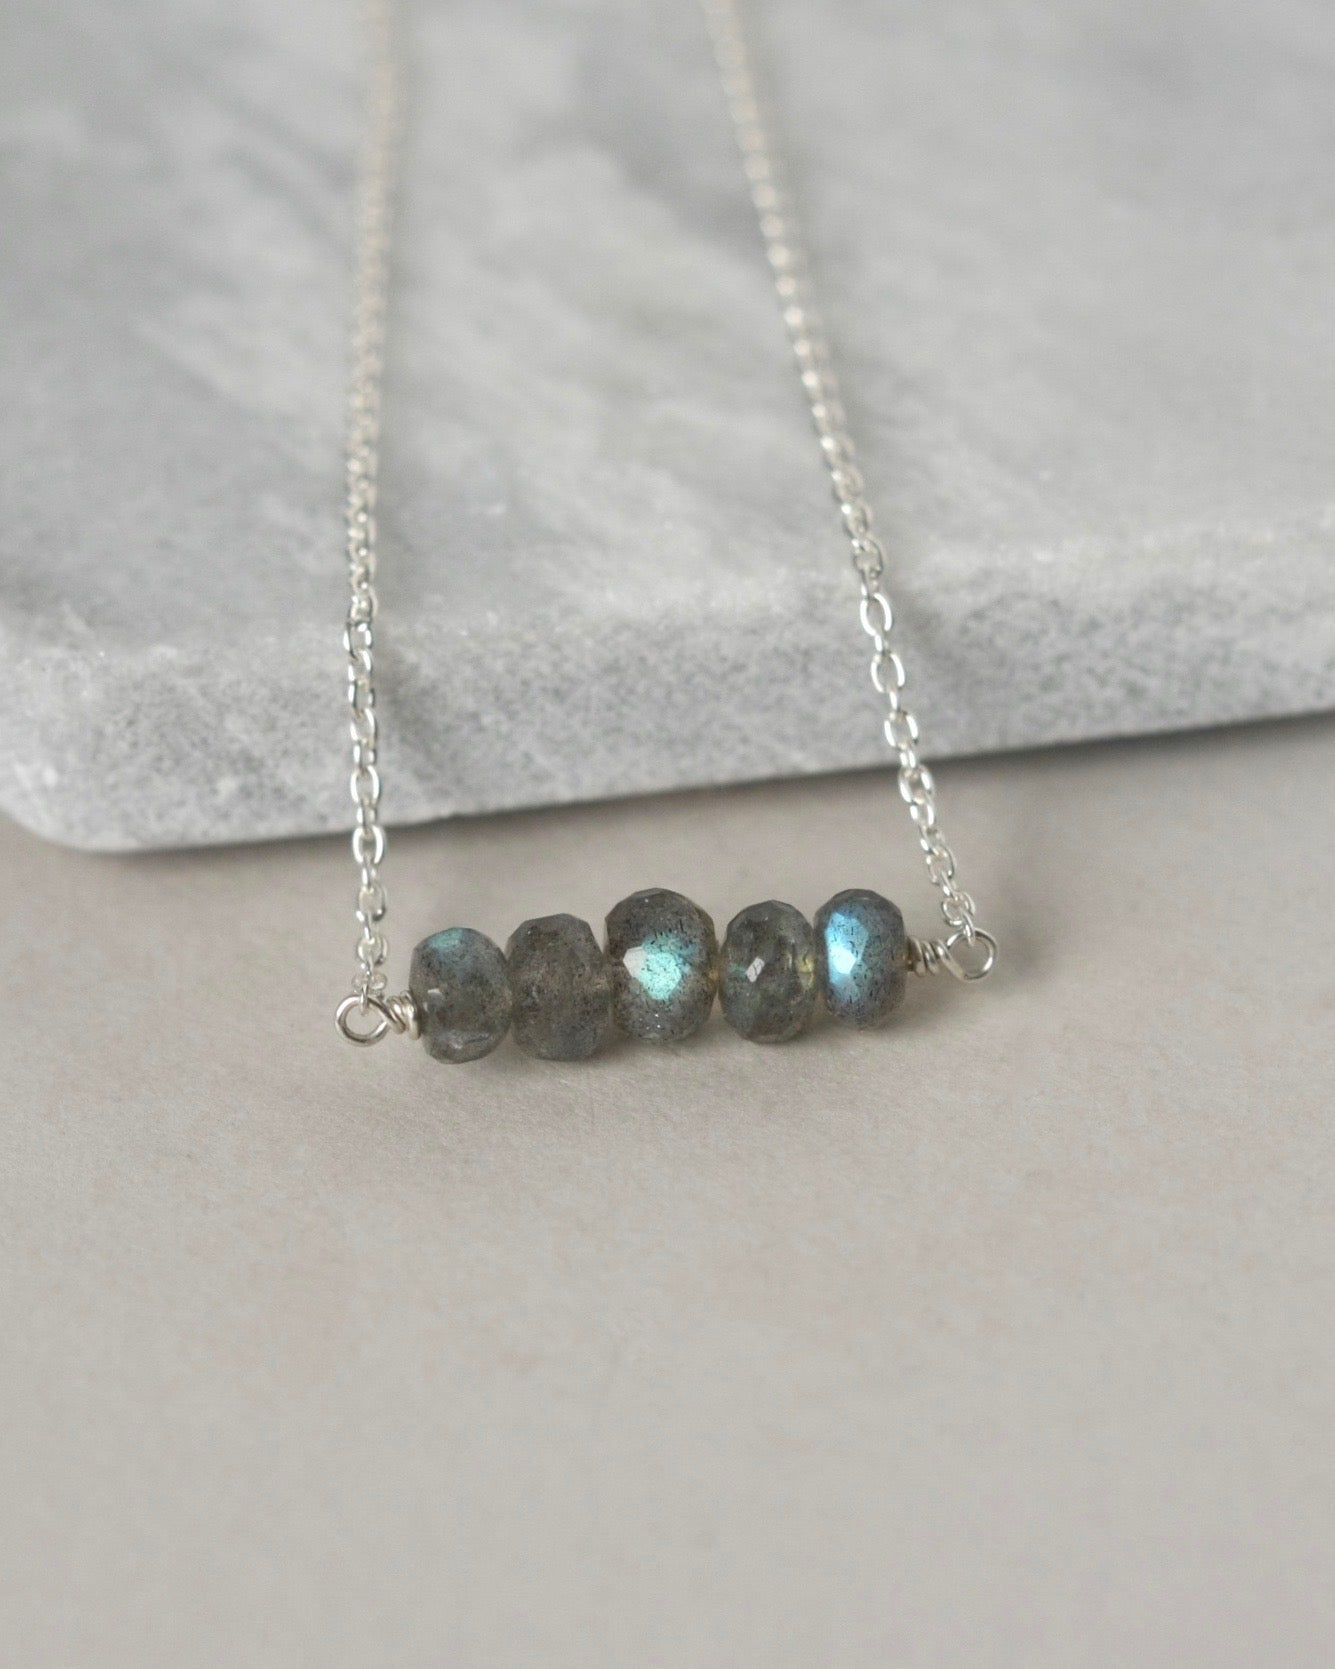 Faceted Labradorite Sterling Silver Necklace